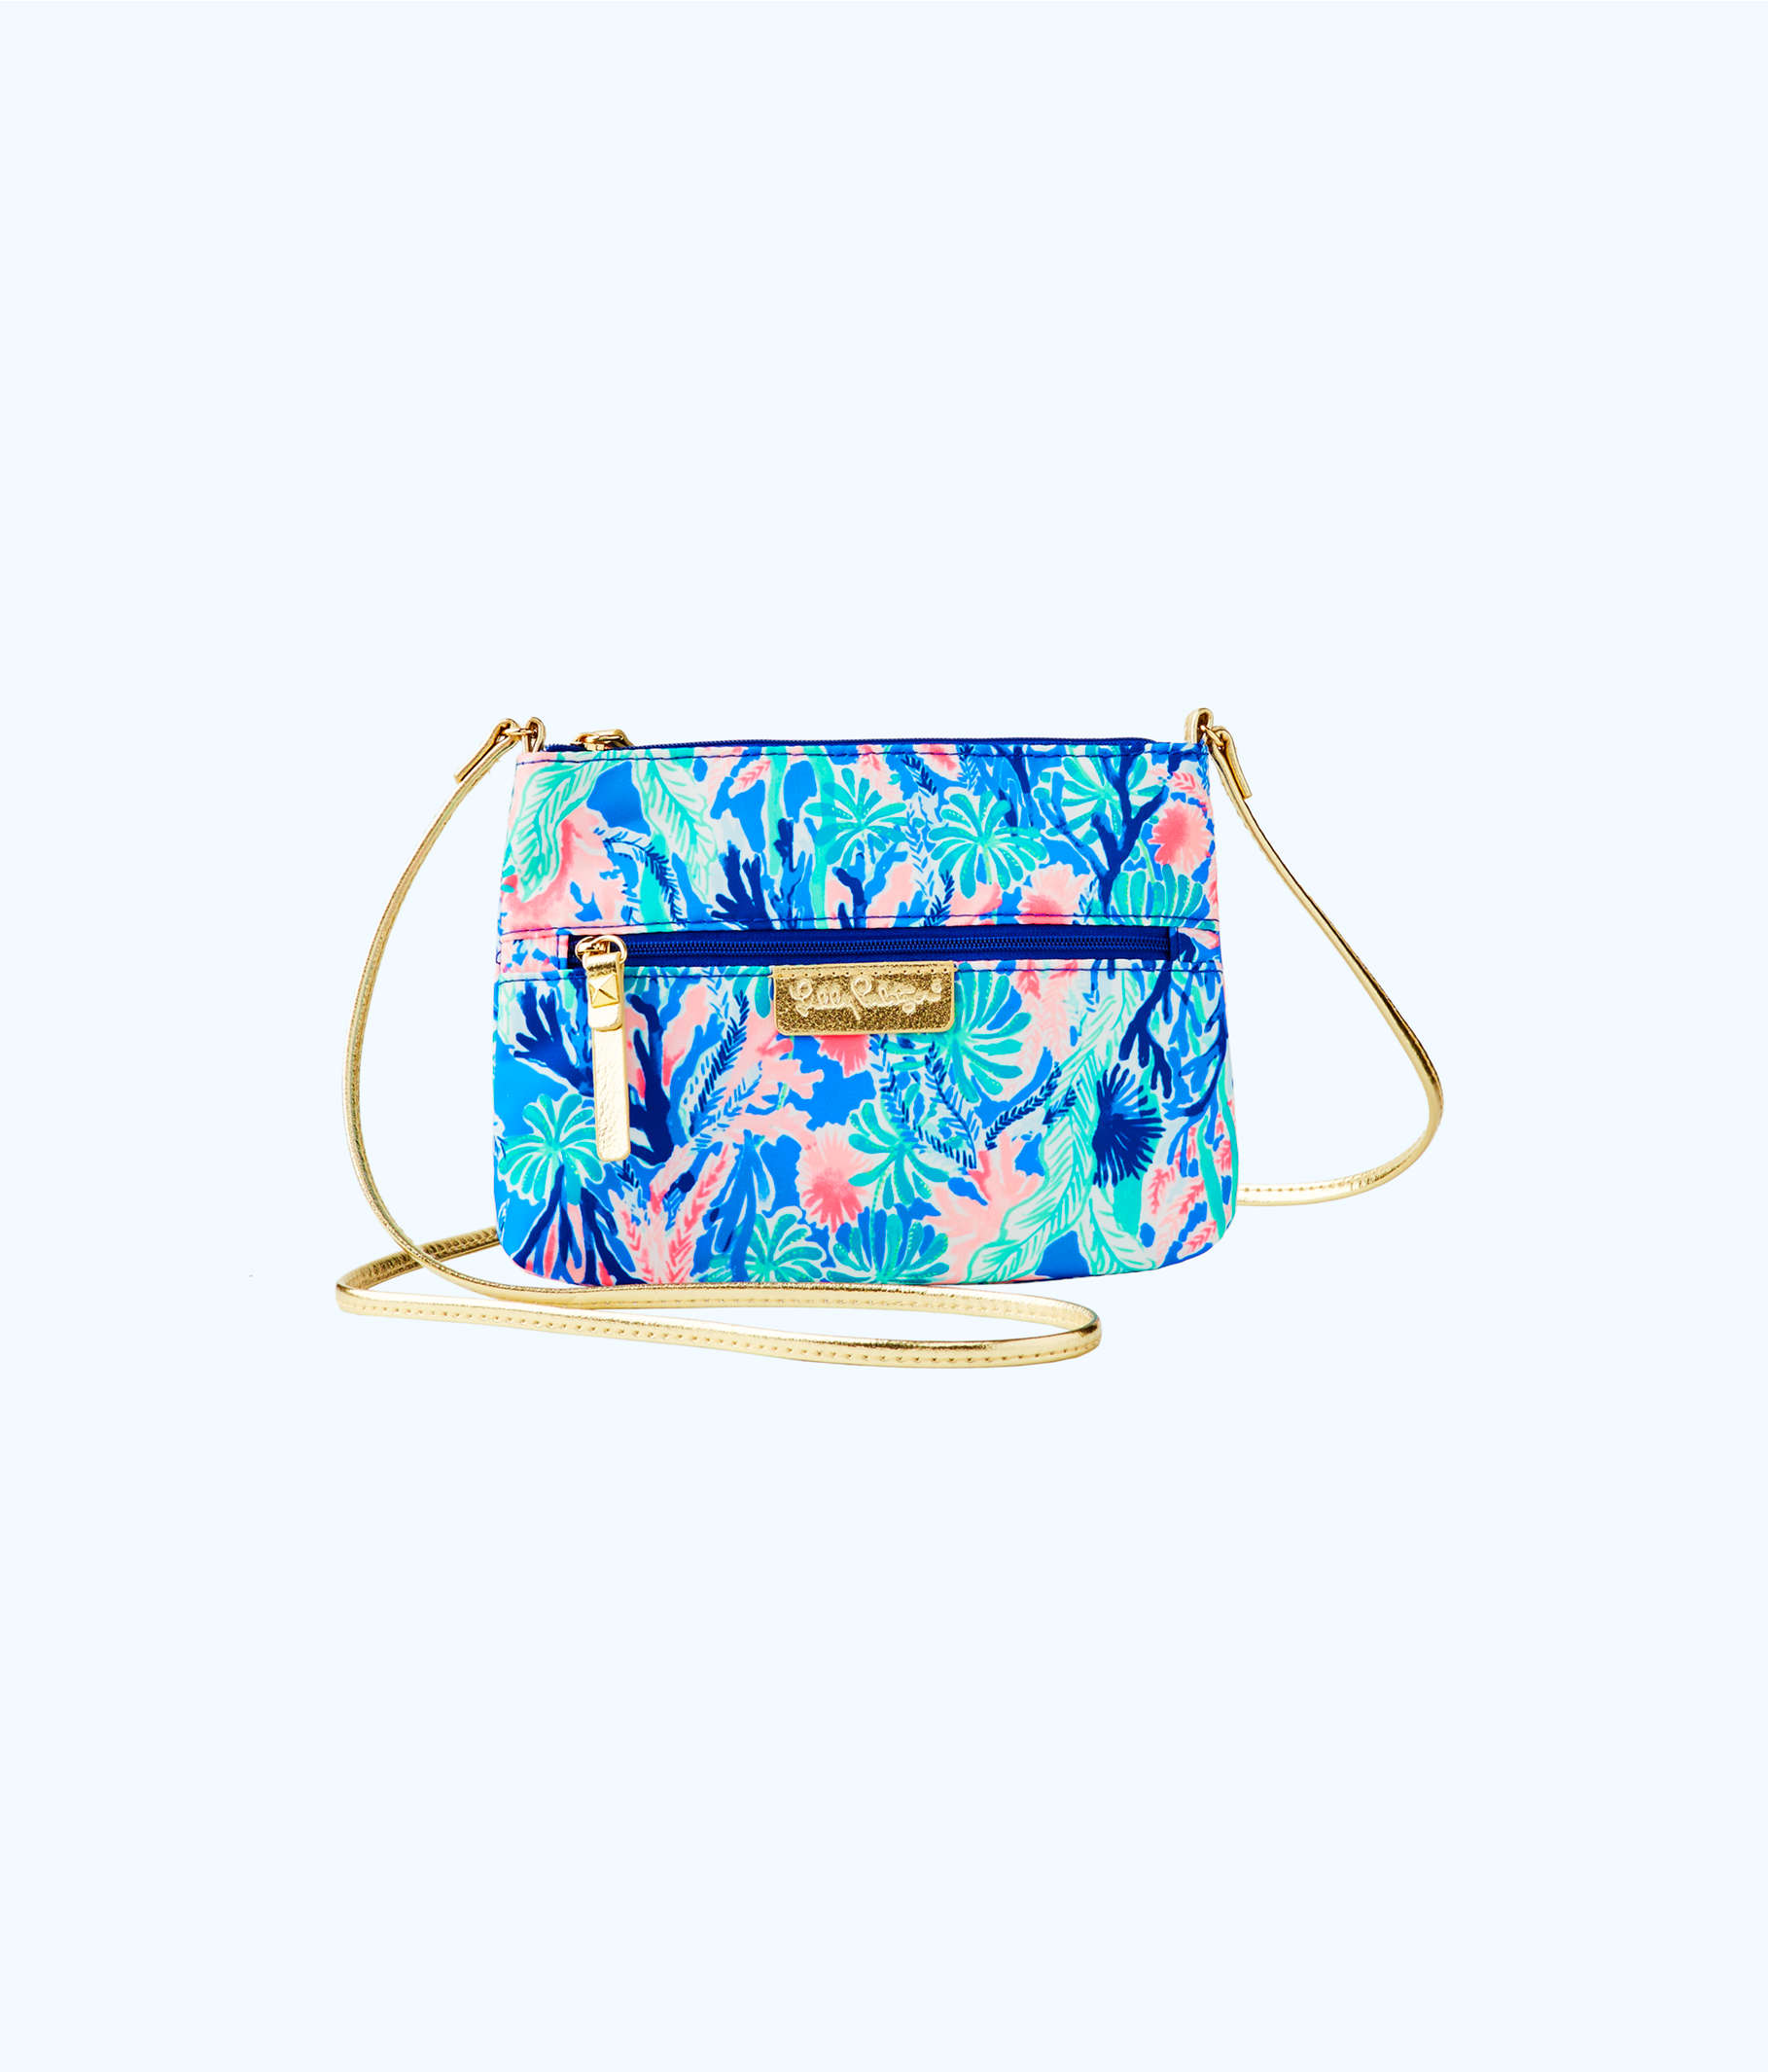 Lilly Pulitzer Lilly Pulitzer Zip It ID Crossbody Bag HJNzPSC